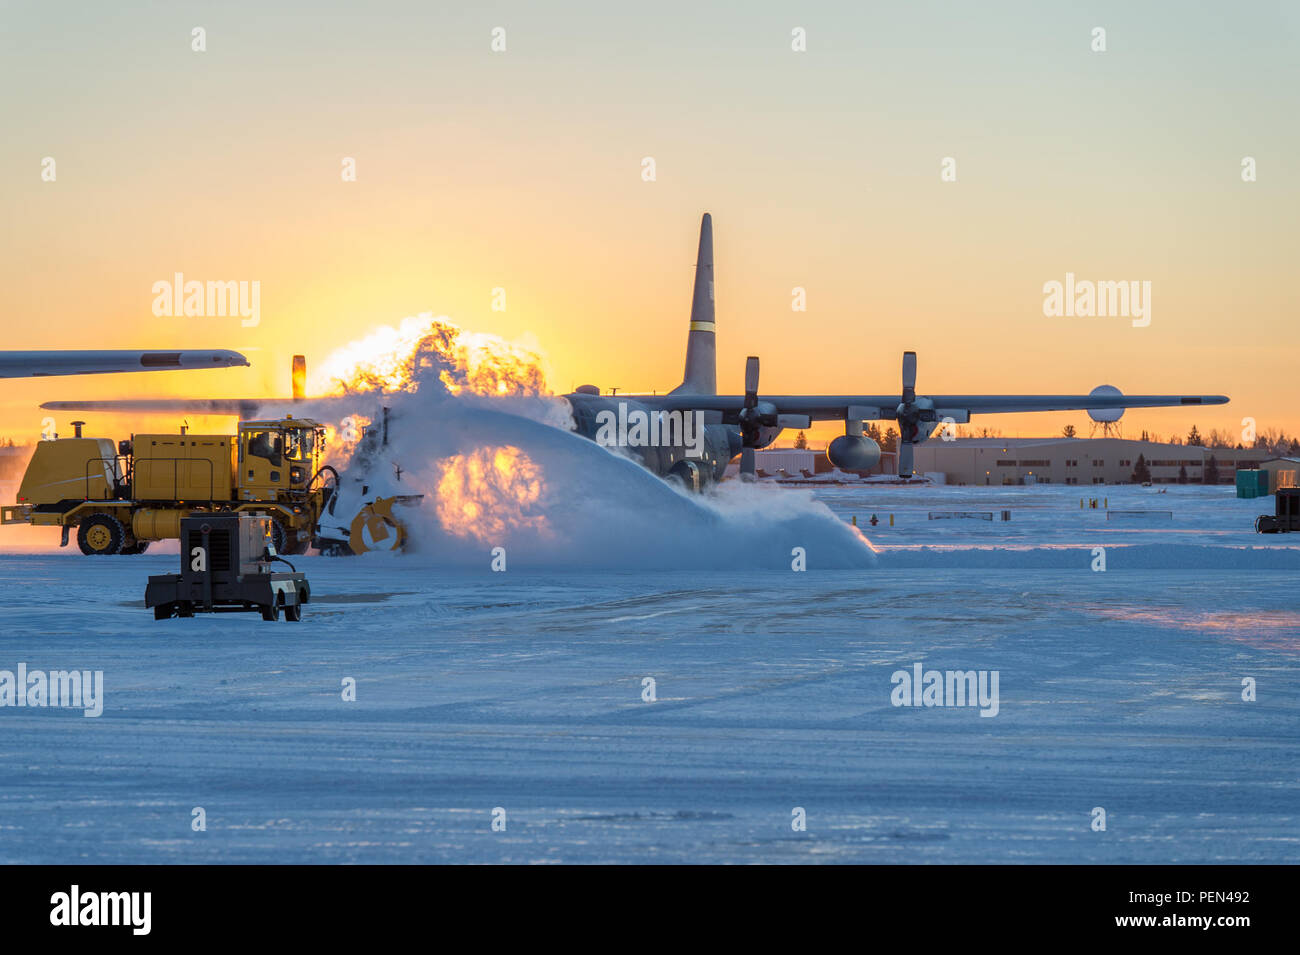 Snow plows remove snow in front of a C-130H Hercules aircraft assigned to the 153rd Airlift Wing, Wyoming Air National Guard, Dec. 16, 2015, in Cheyenne, Wyo. The National Weather Service reported a daily maximum snowfall record for Dec. 15 at Cheyenne Regional Airport with 6.7 inches of snowfall, which breaks the old record of 3.3 inches set in 1892. (U.S. Air National Guard photo by Master Sgt. Charles Delano/released) Stock Photo